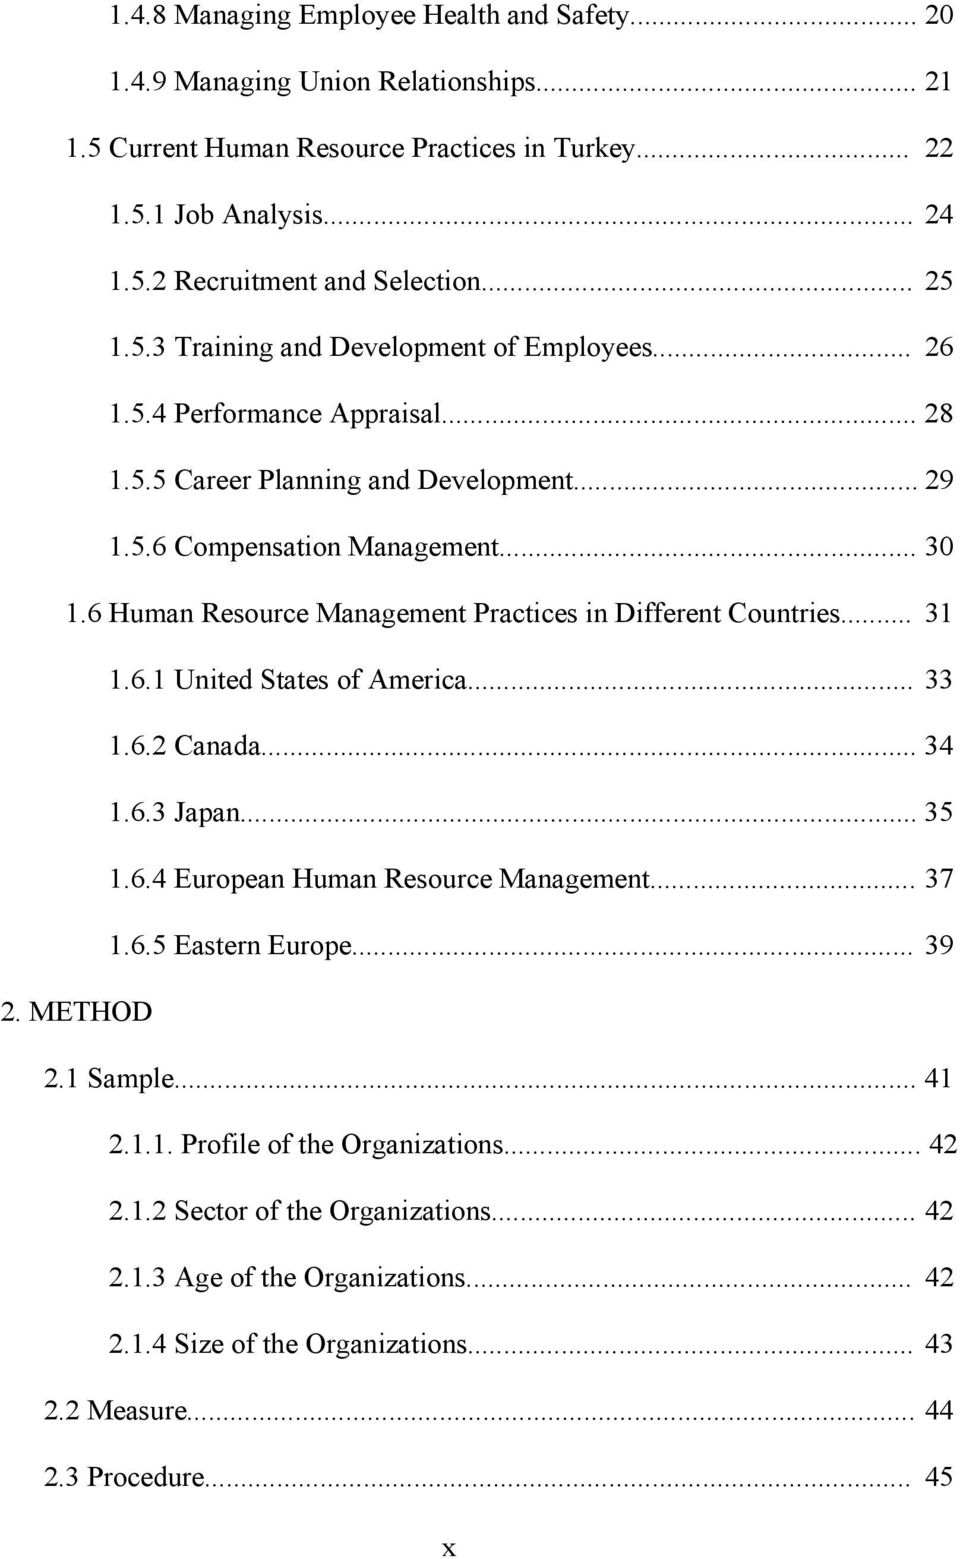 6 Human Resource Management Practices in Different Countries... 31 1.6.1 United States of America... 33 1.6.2 Canada... 34 1.6.3 Japan... 35 1.6.4 European Human Resource Management... 37 1.6.5 Eastern Europe.